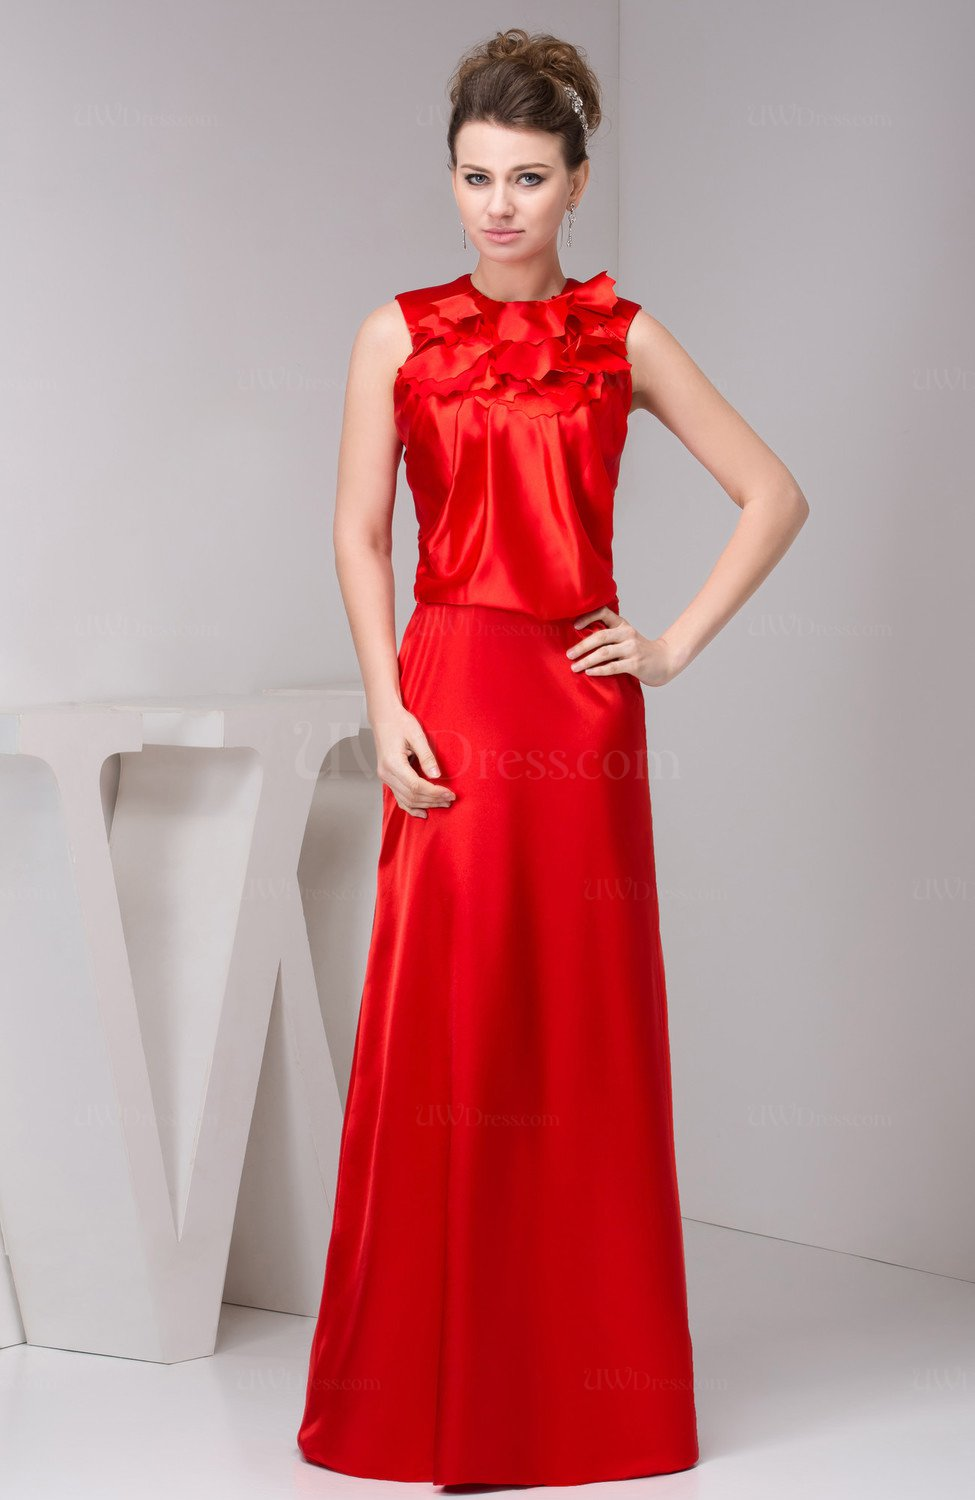 Maternity bridesmaid dress affordable spring trendy formal for Trendy wedding guest dresses